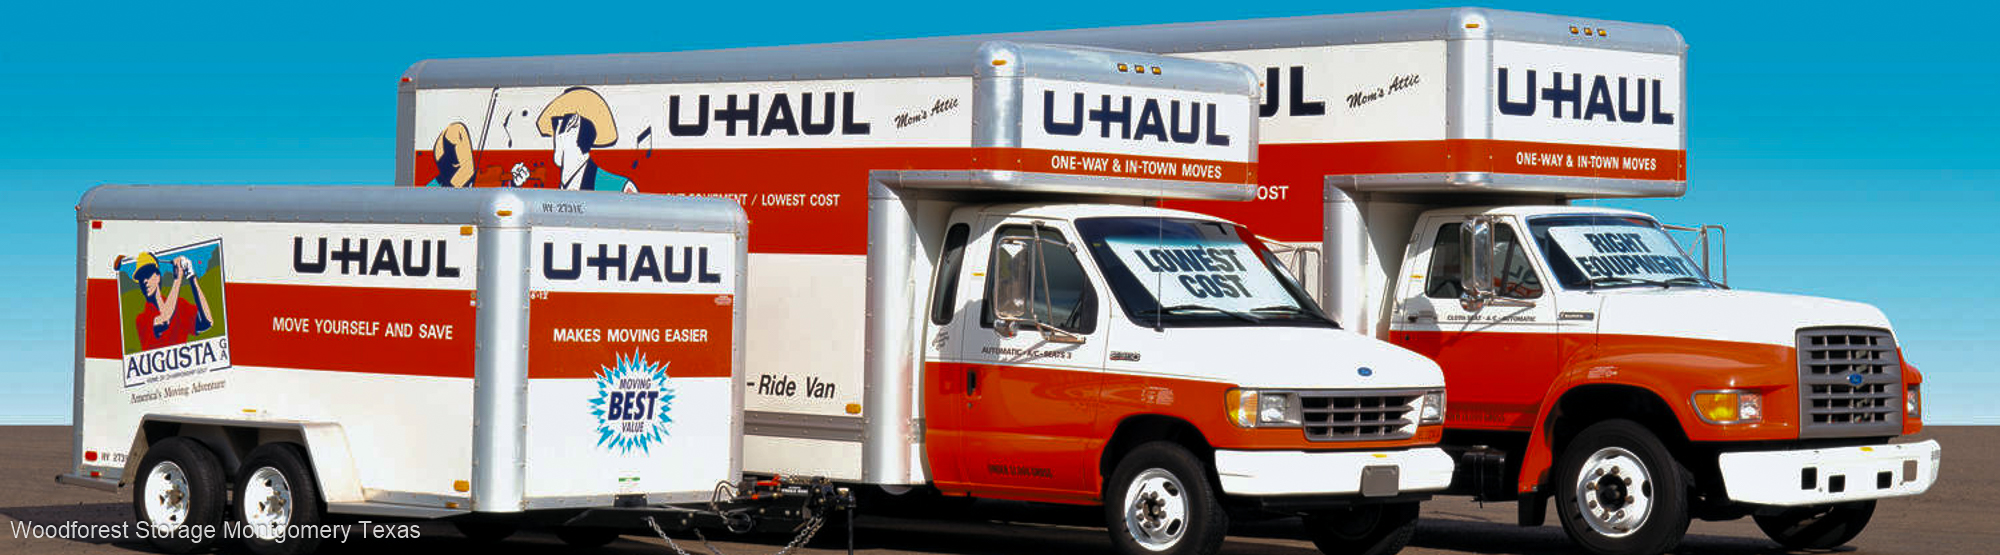 Uhaul Trucks Near Me